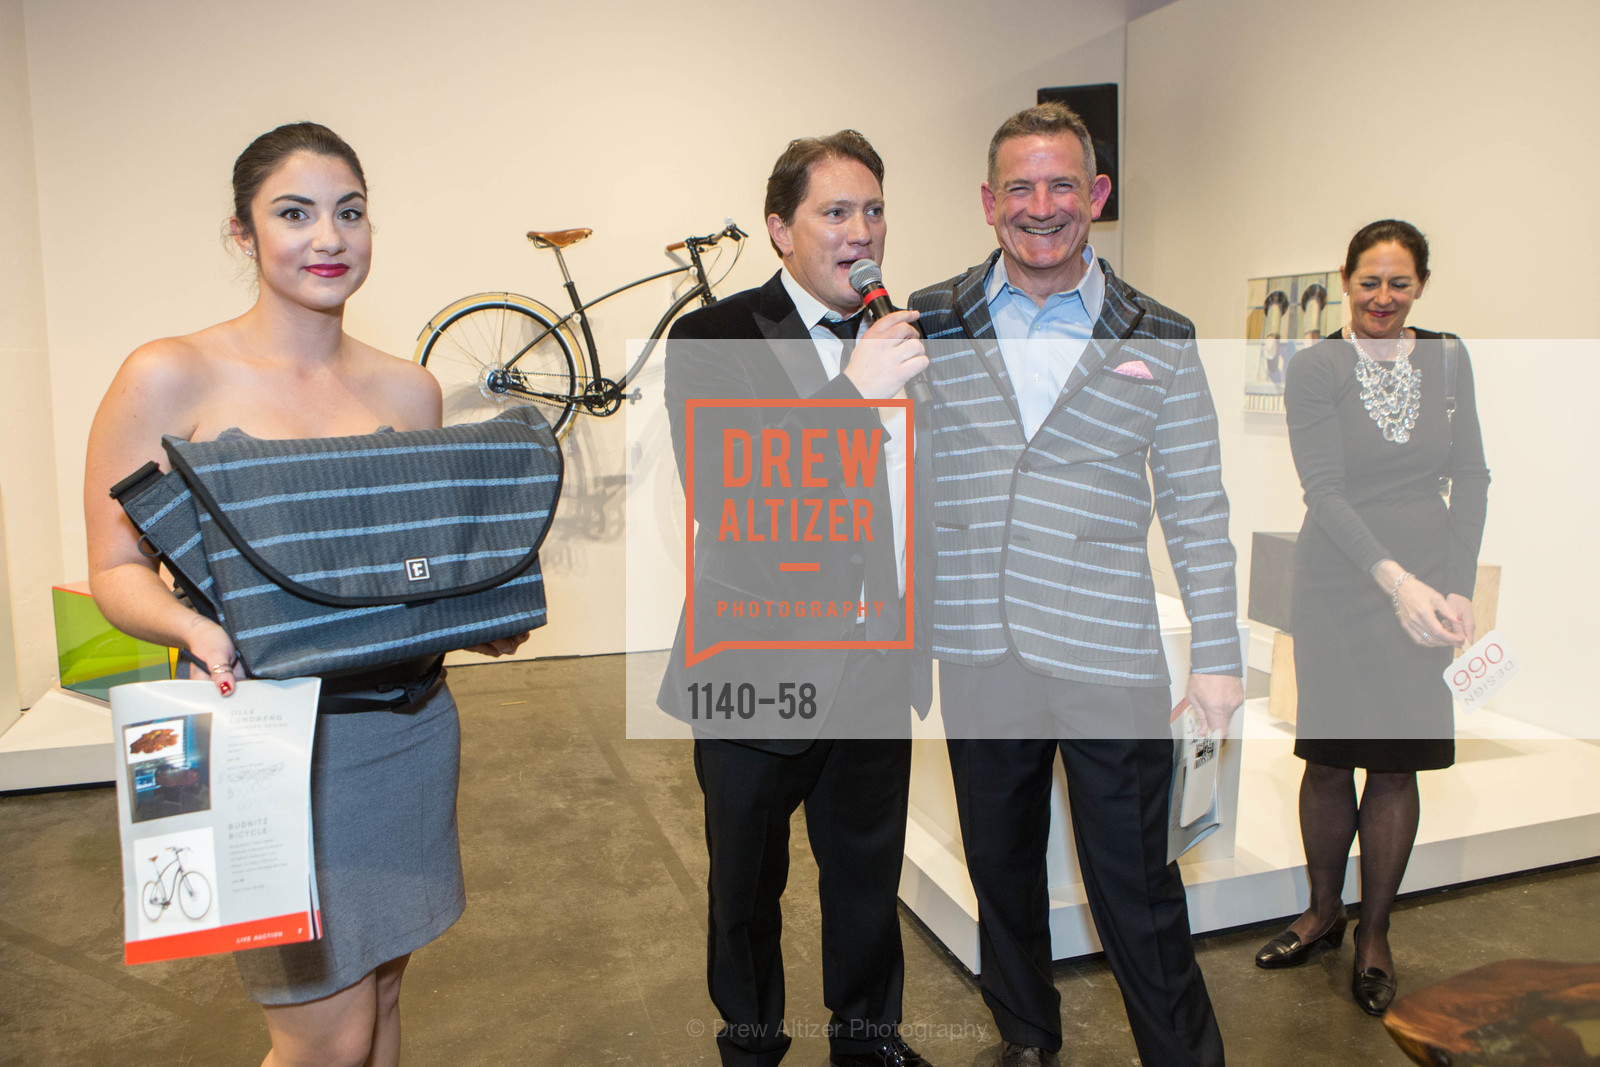 Sara Dermody, Liam Mayclem, Mark Dwight, Design10 Anniversary Auction Hosted by the Museum of Craft and Design, Museum of Craft and Design, April 24th, 2015,Drew Altizer, Drew Altizer Photography, full-service agency, private events, San Francisco photographer, photographer california